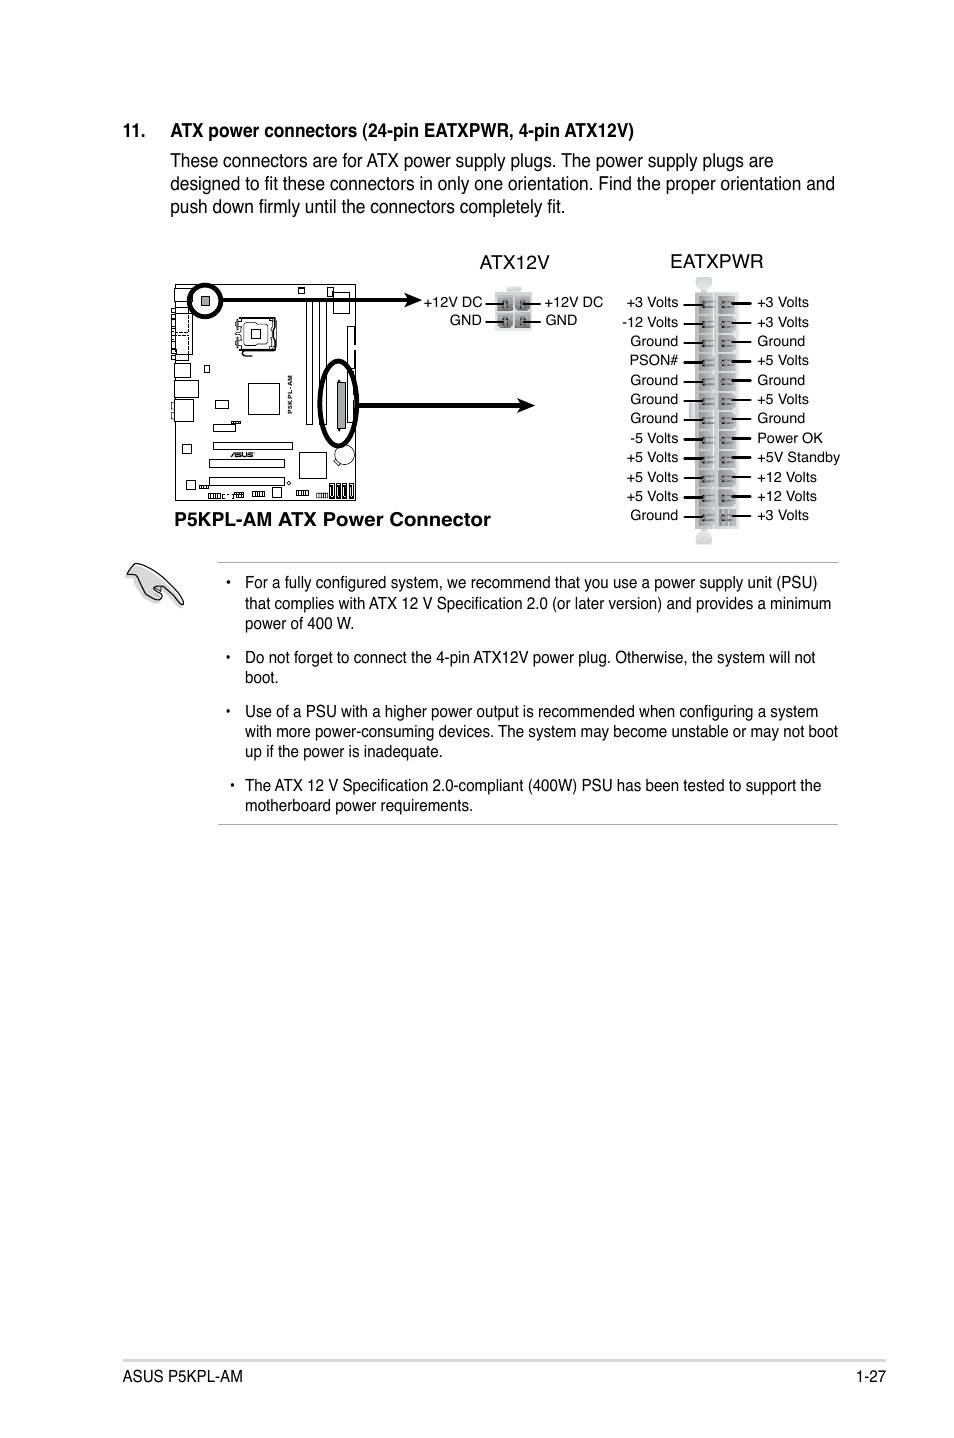 P5kpl Am Atx Power Connector Eatxpwr Atx12v Asus Ps User 5 Volt Circuit Diagram Manual Page 37 62